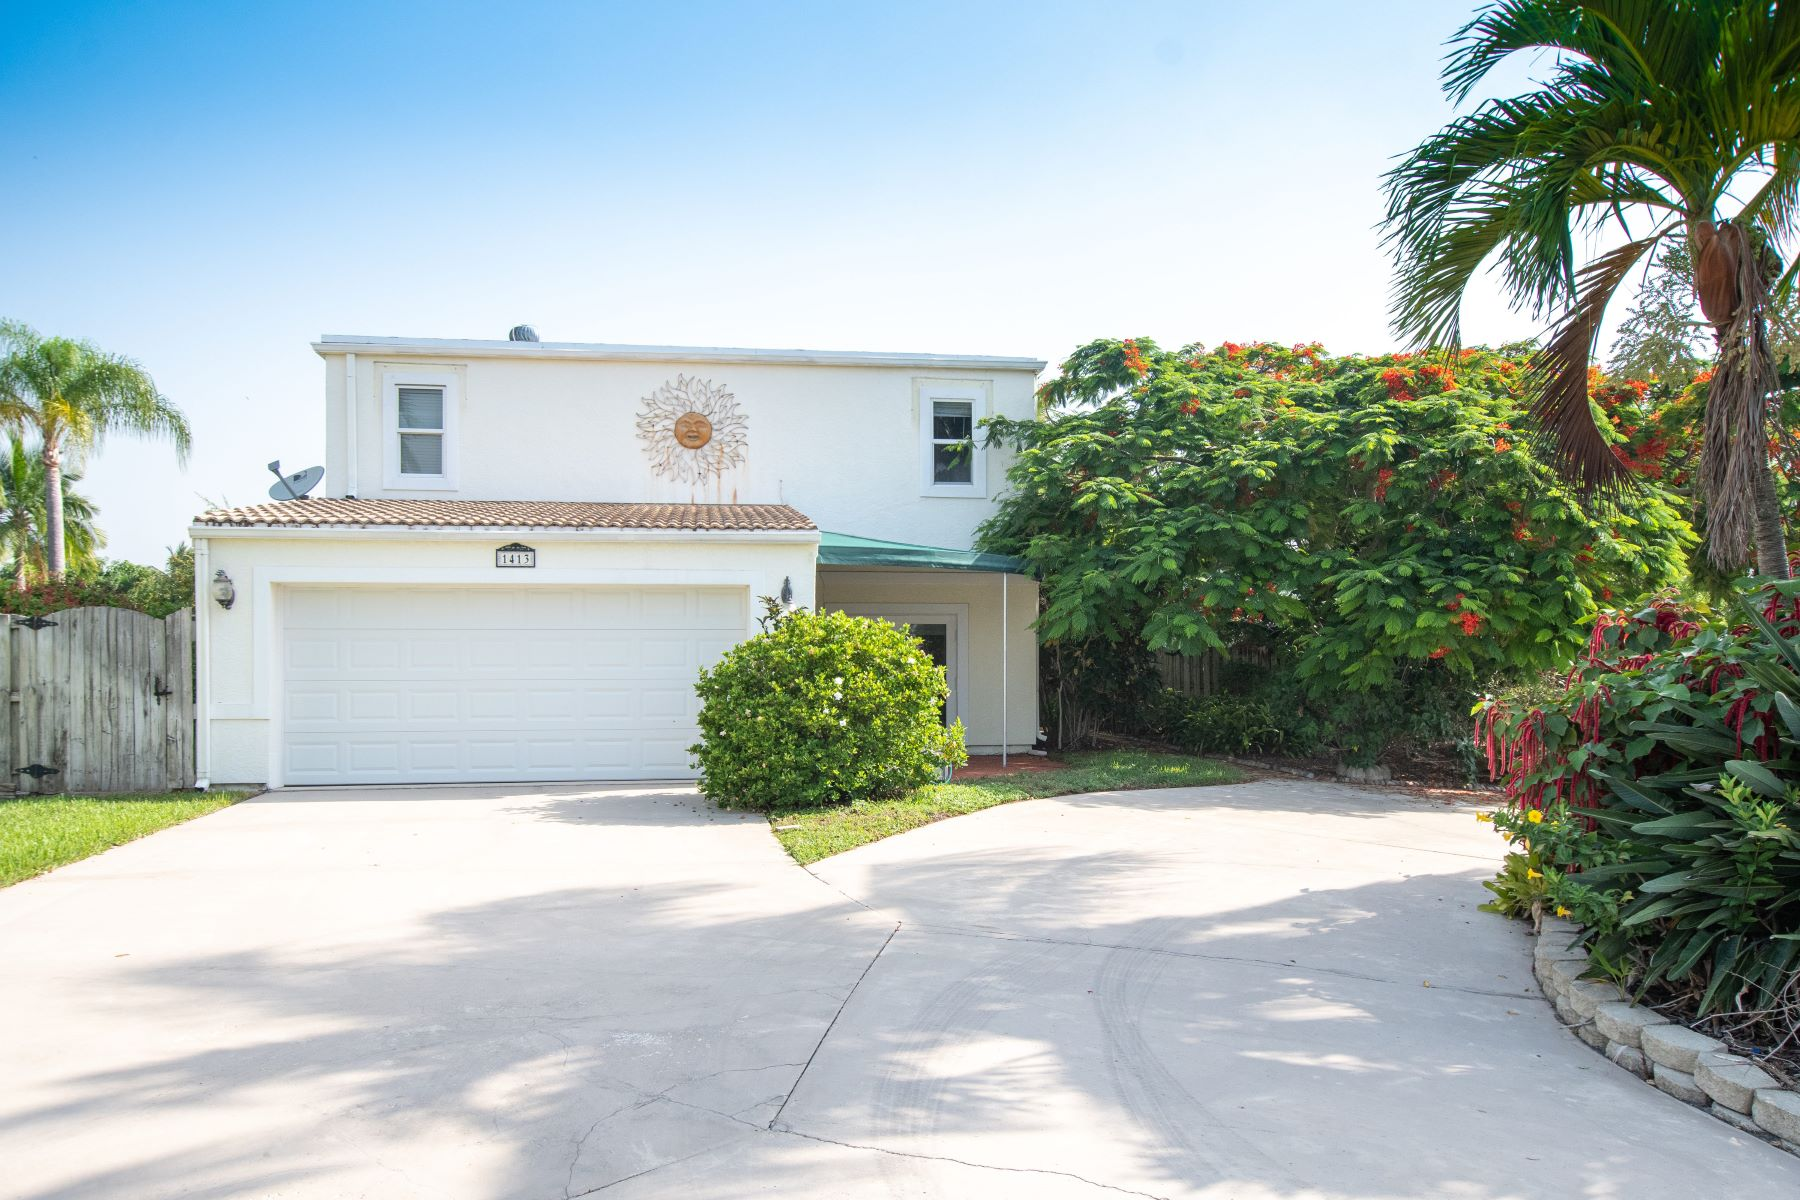 Single Family Homes for Sale at 1413 Mediterranean Road E Lake Clarke Shores, Florida 33406 United States